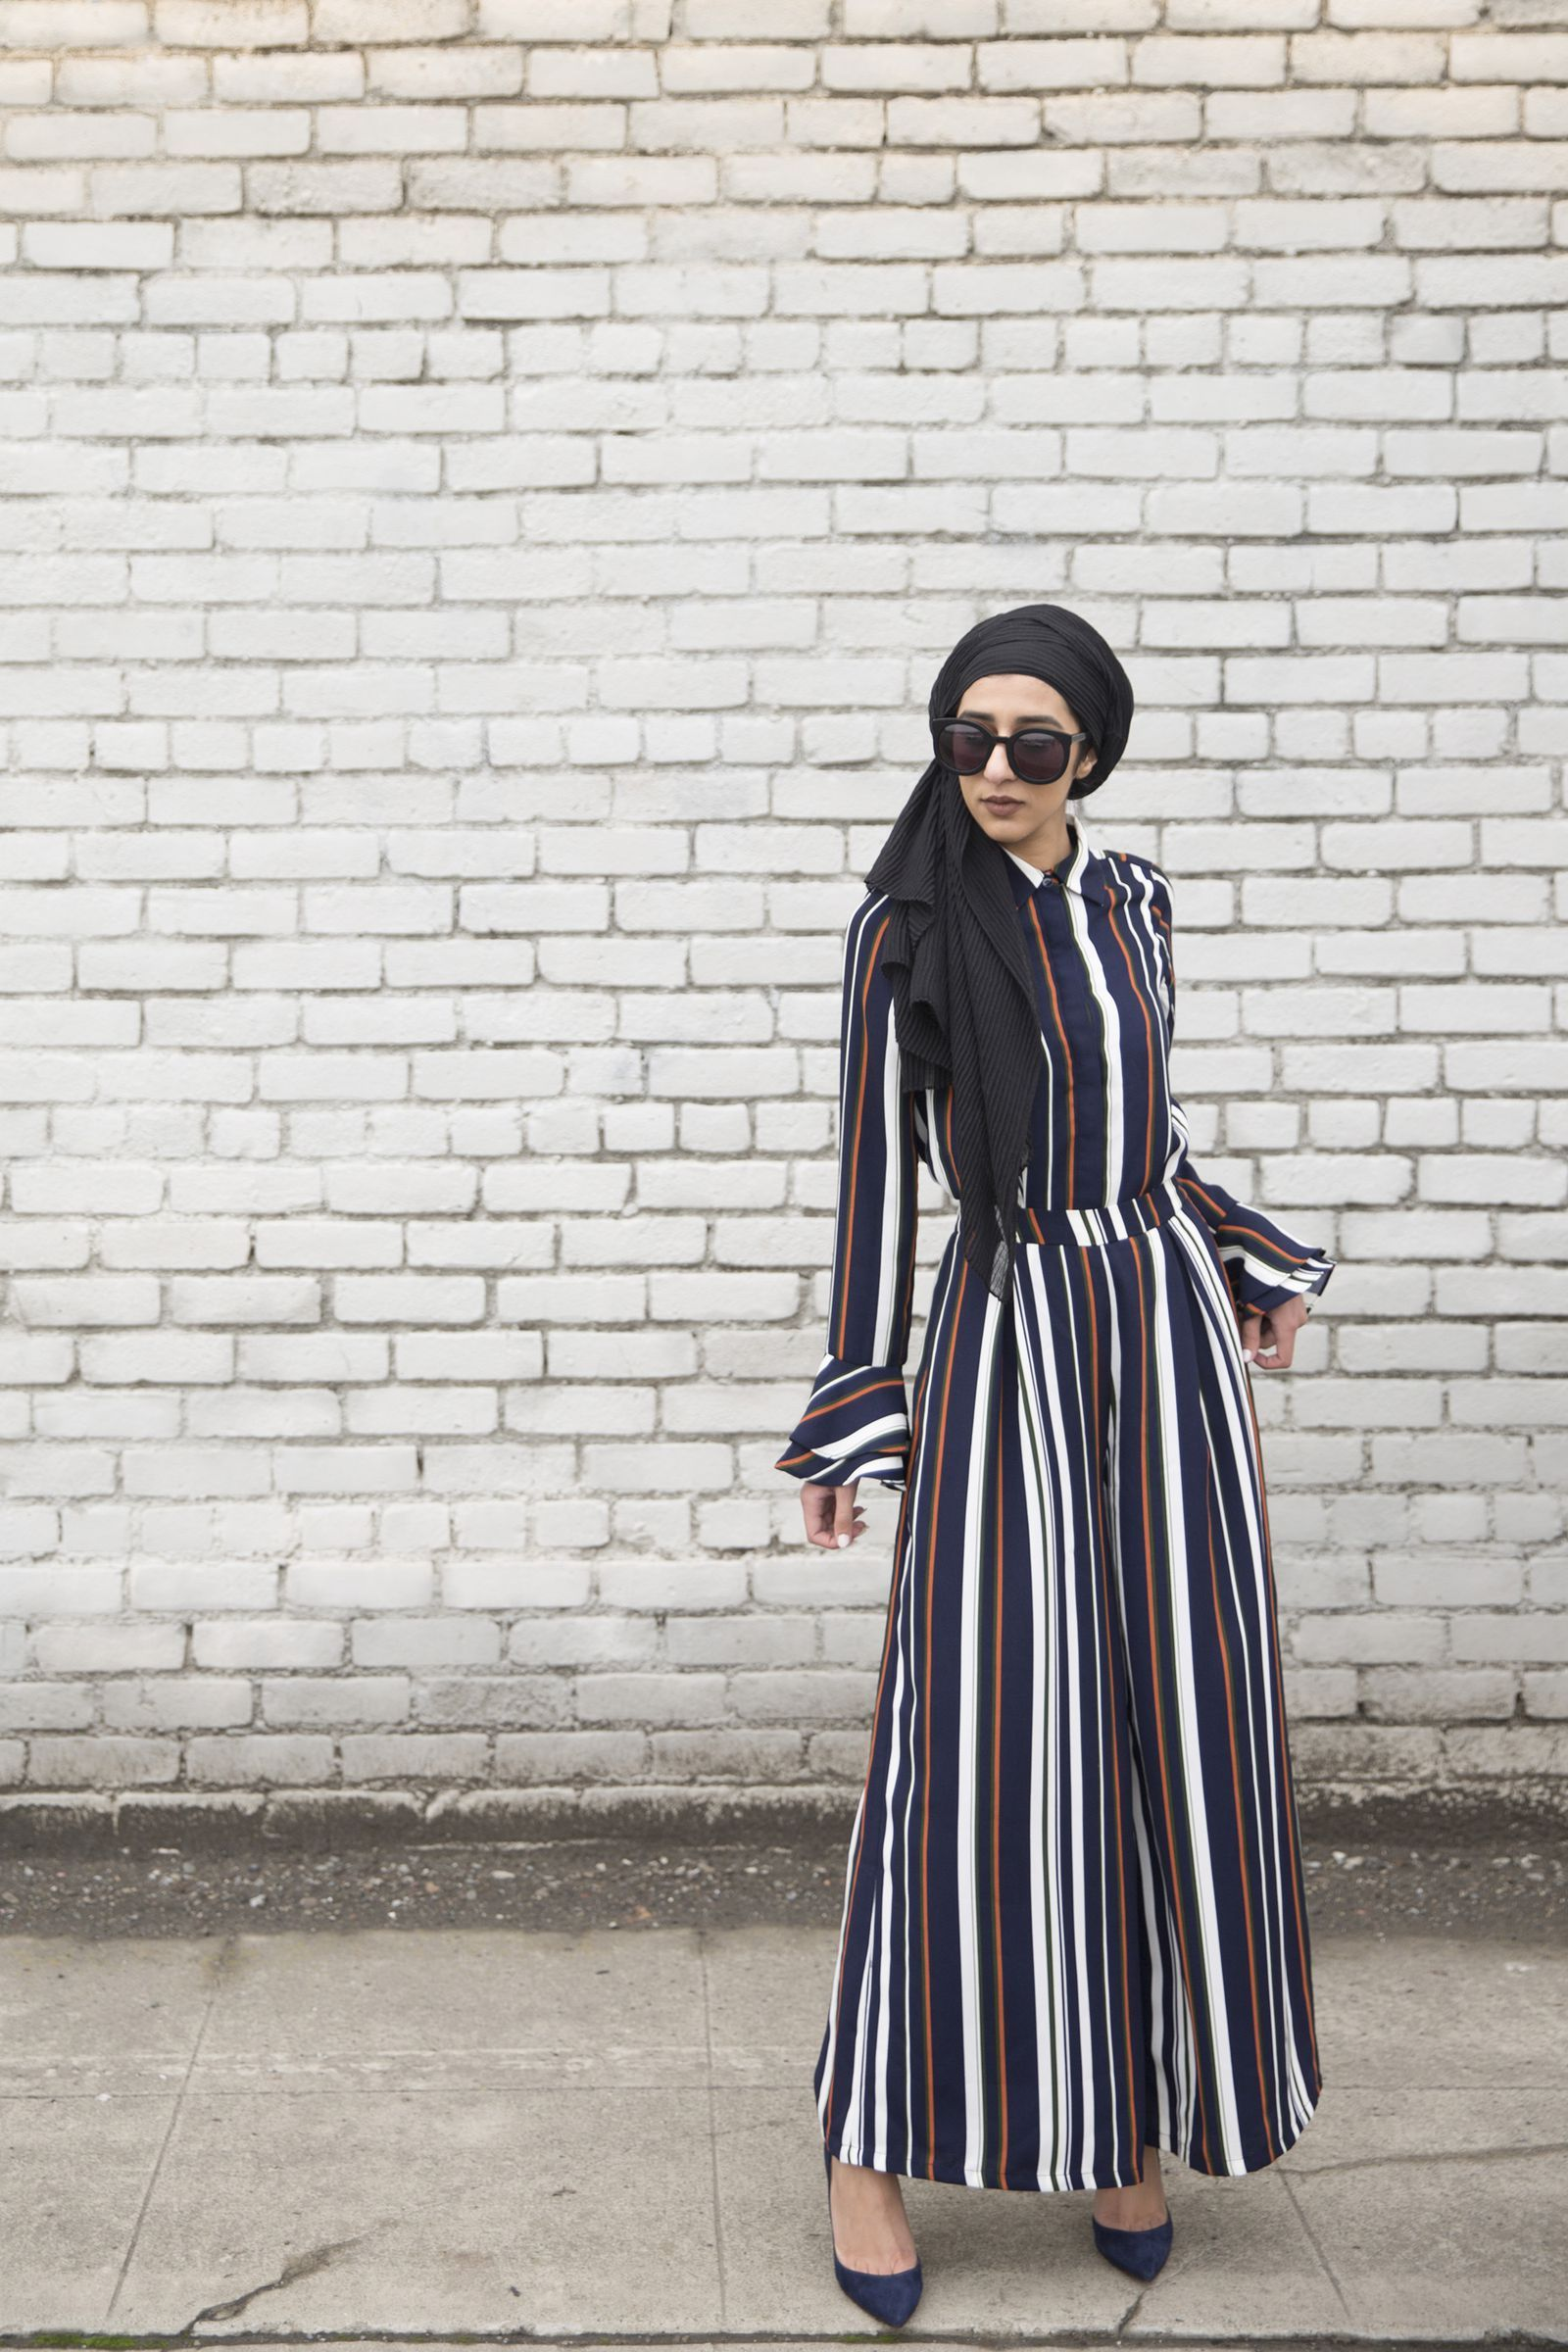 Directional Yet Demure Clothing For The Cool Modern Woman: Macy's Will Sell Hijabs In New Modest Clothing Line